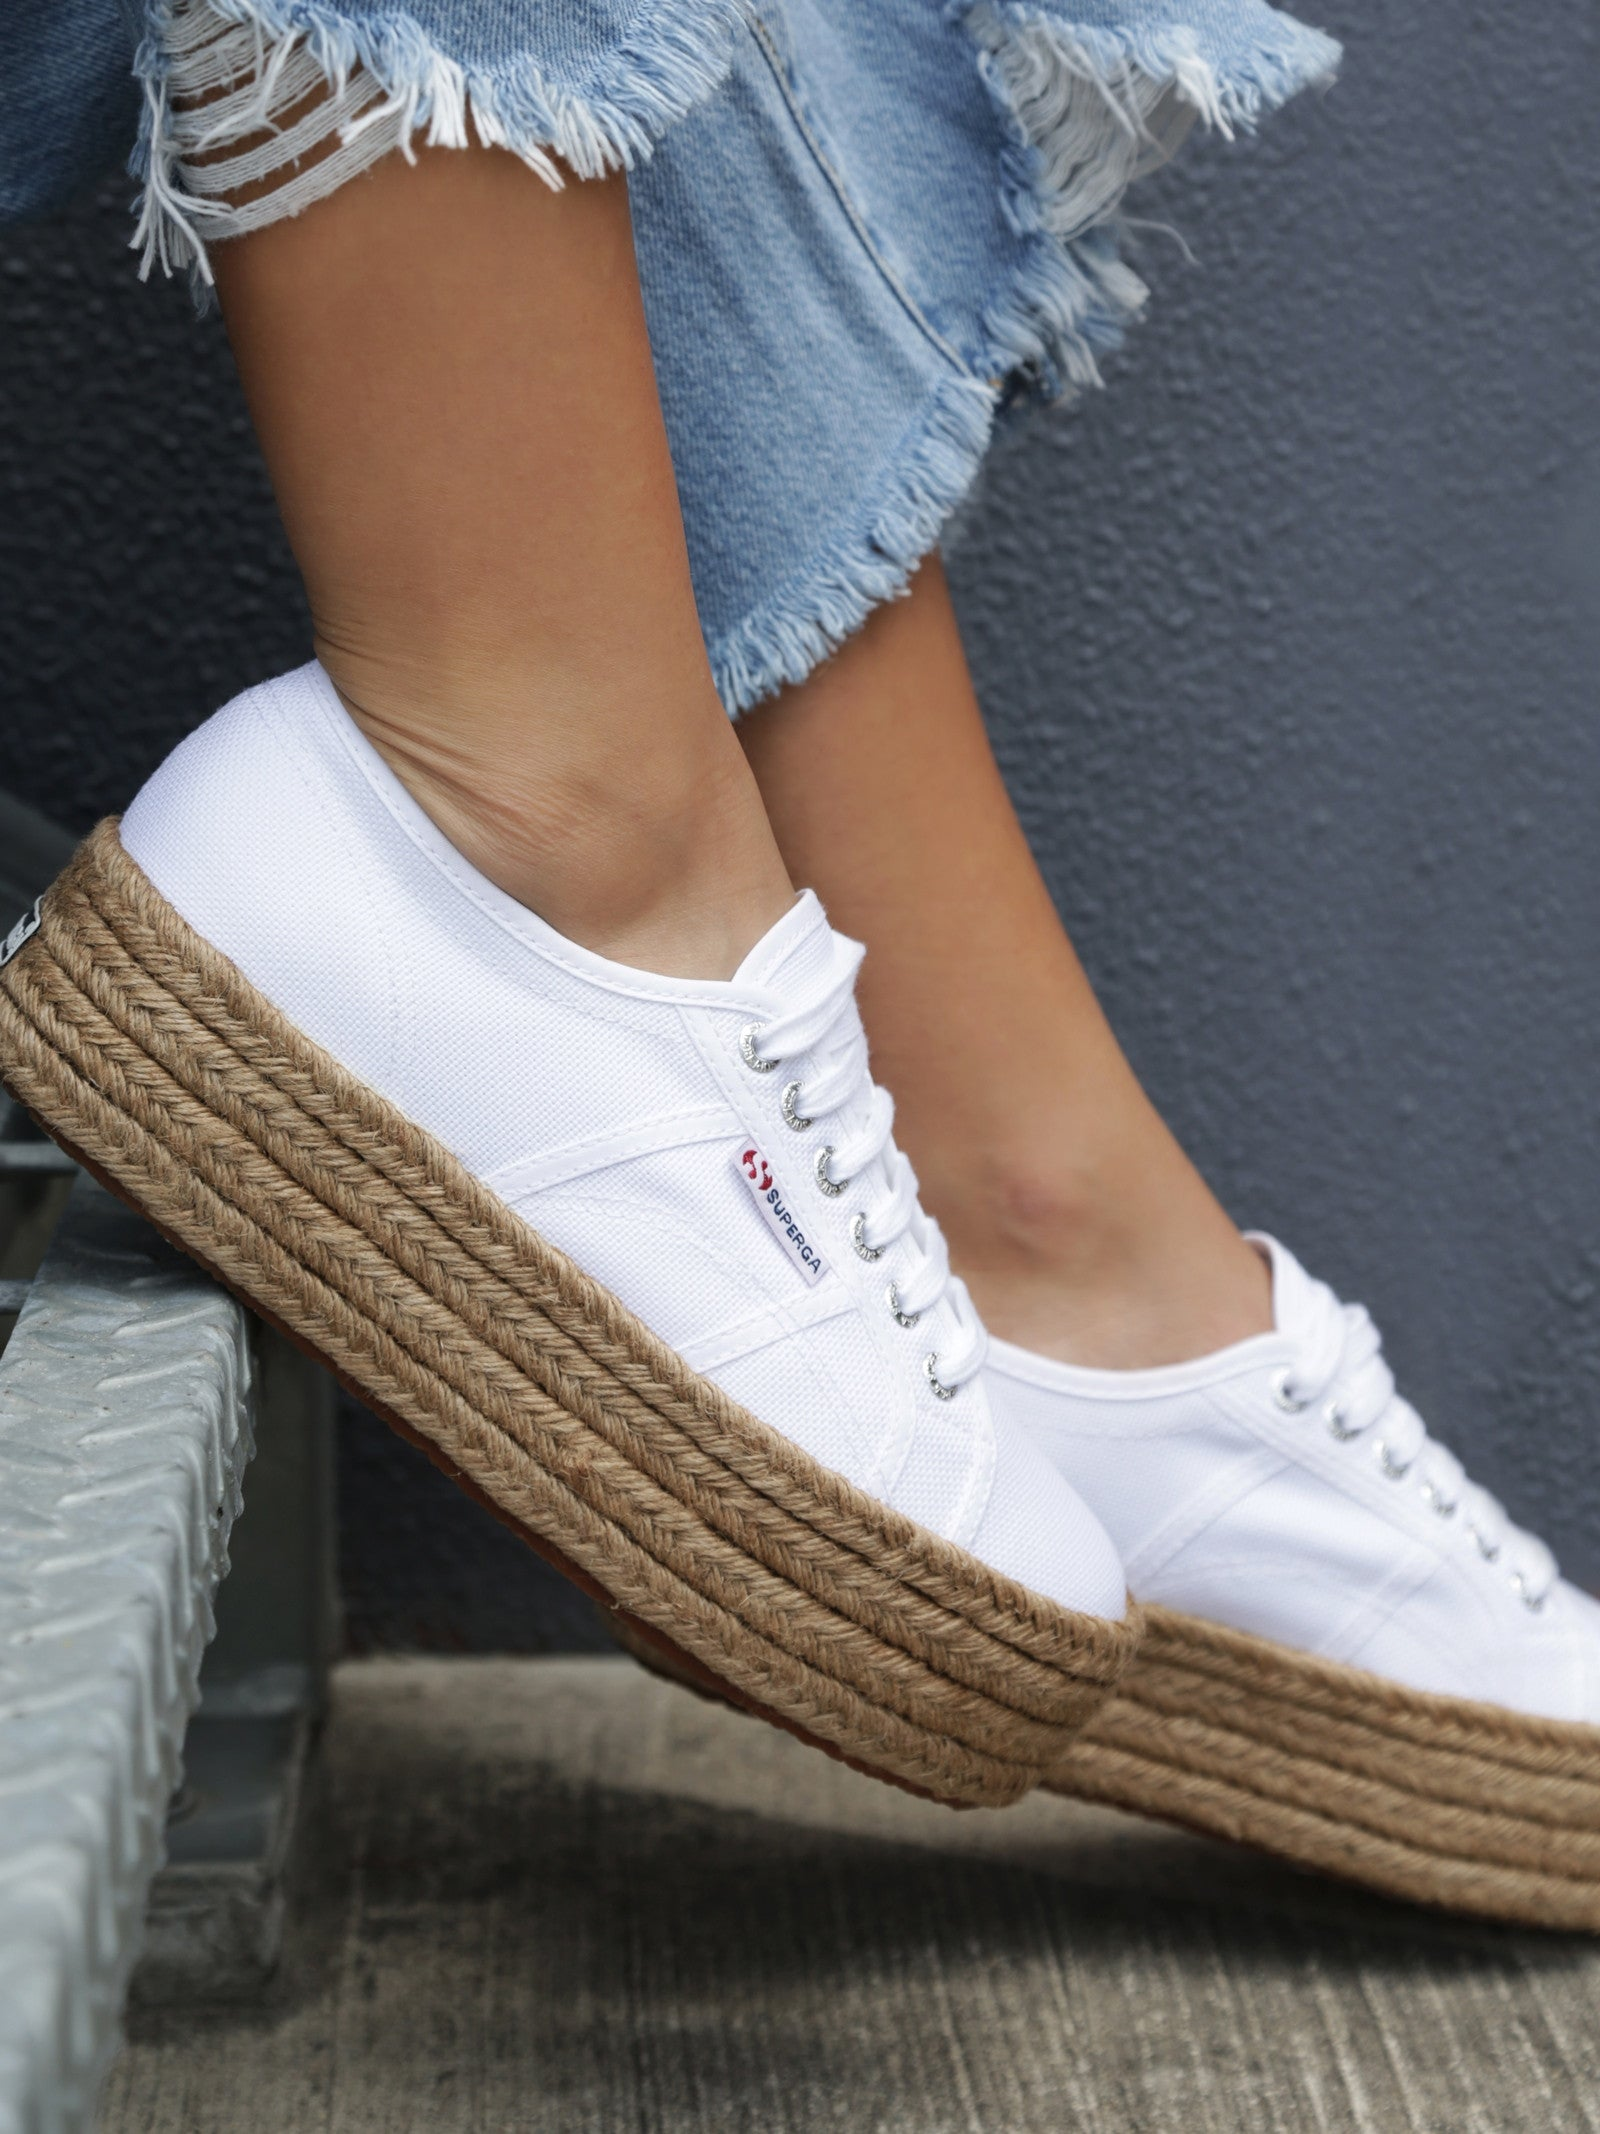 Superga Rope WhitePlatform